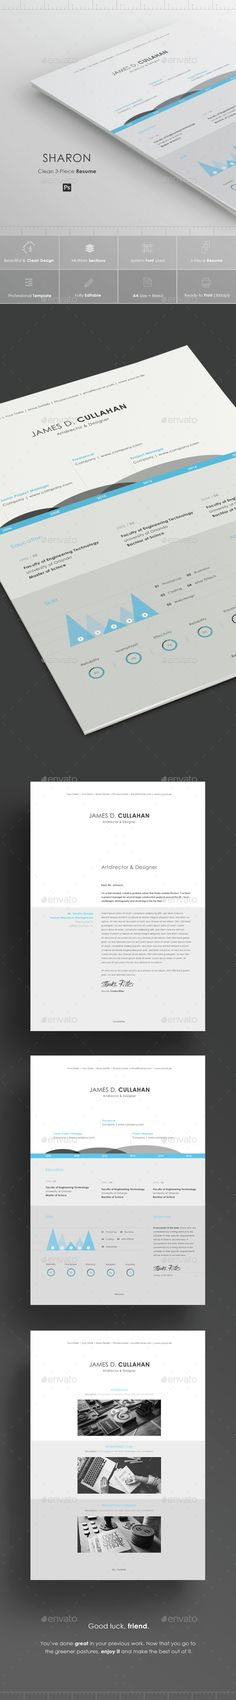 Resume Template Psd Vector Ai Download Here  Cv